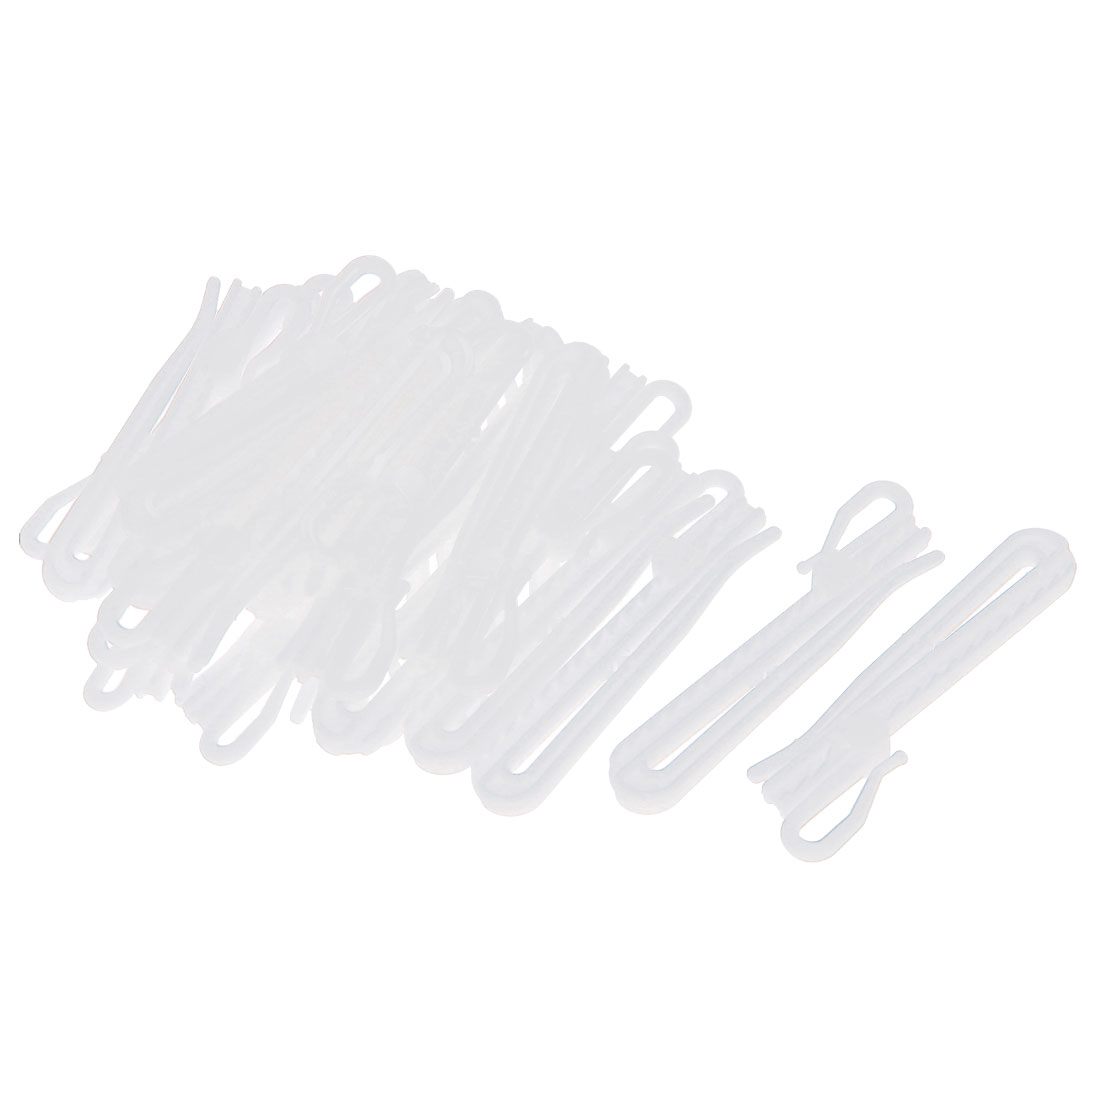 25Pcs Plastic Adjustable Depth Pinch Pleat Locking Curtain Tape Clip Hooks 9cm